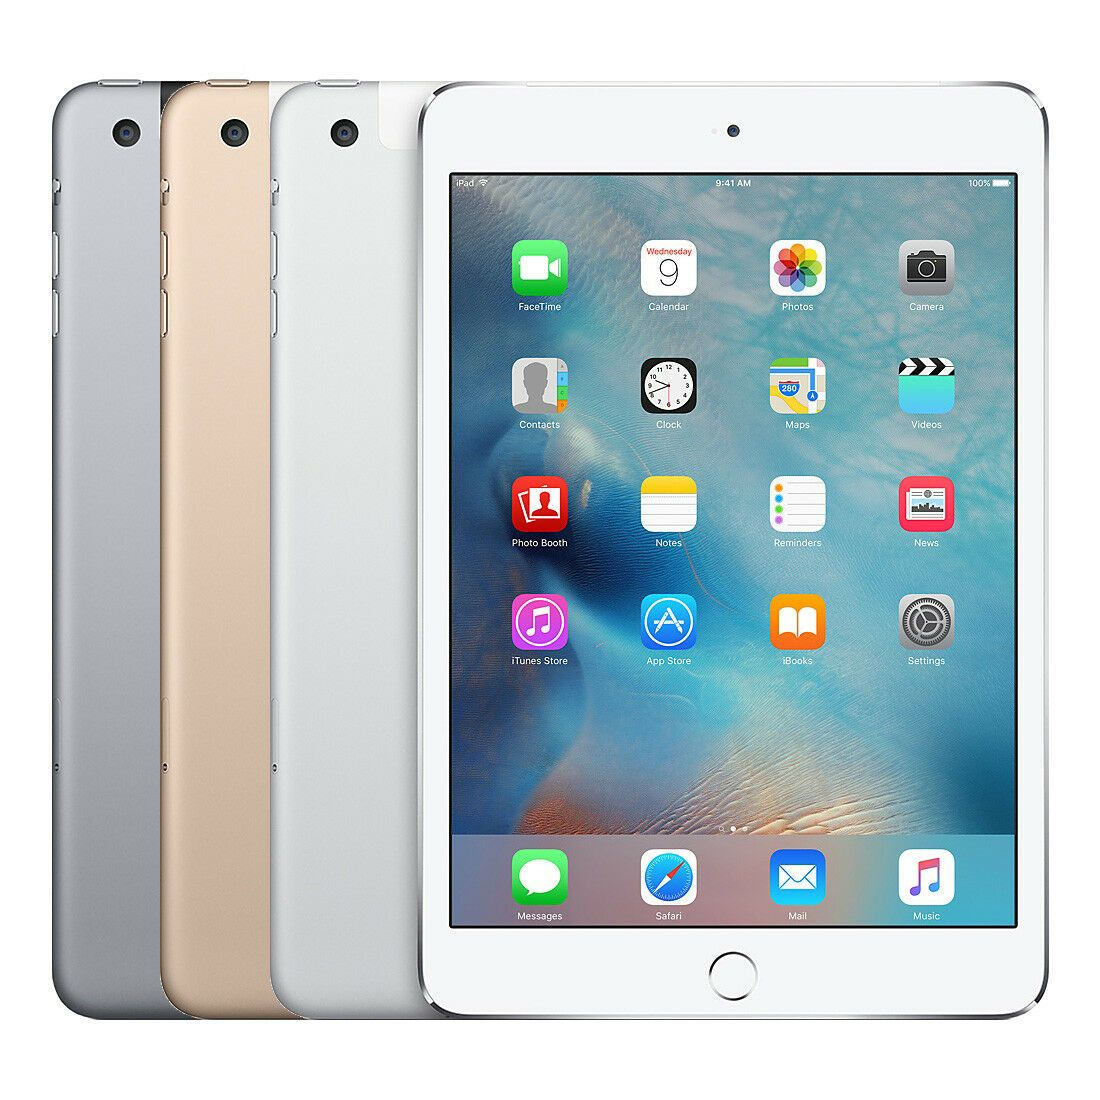 Apple iPad Mini 3 16GB iOS WiFi Cellular Verizon Wireless 3rd Generation Tablet - Fix Or Cell Now Device Shop